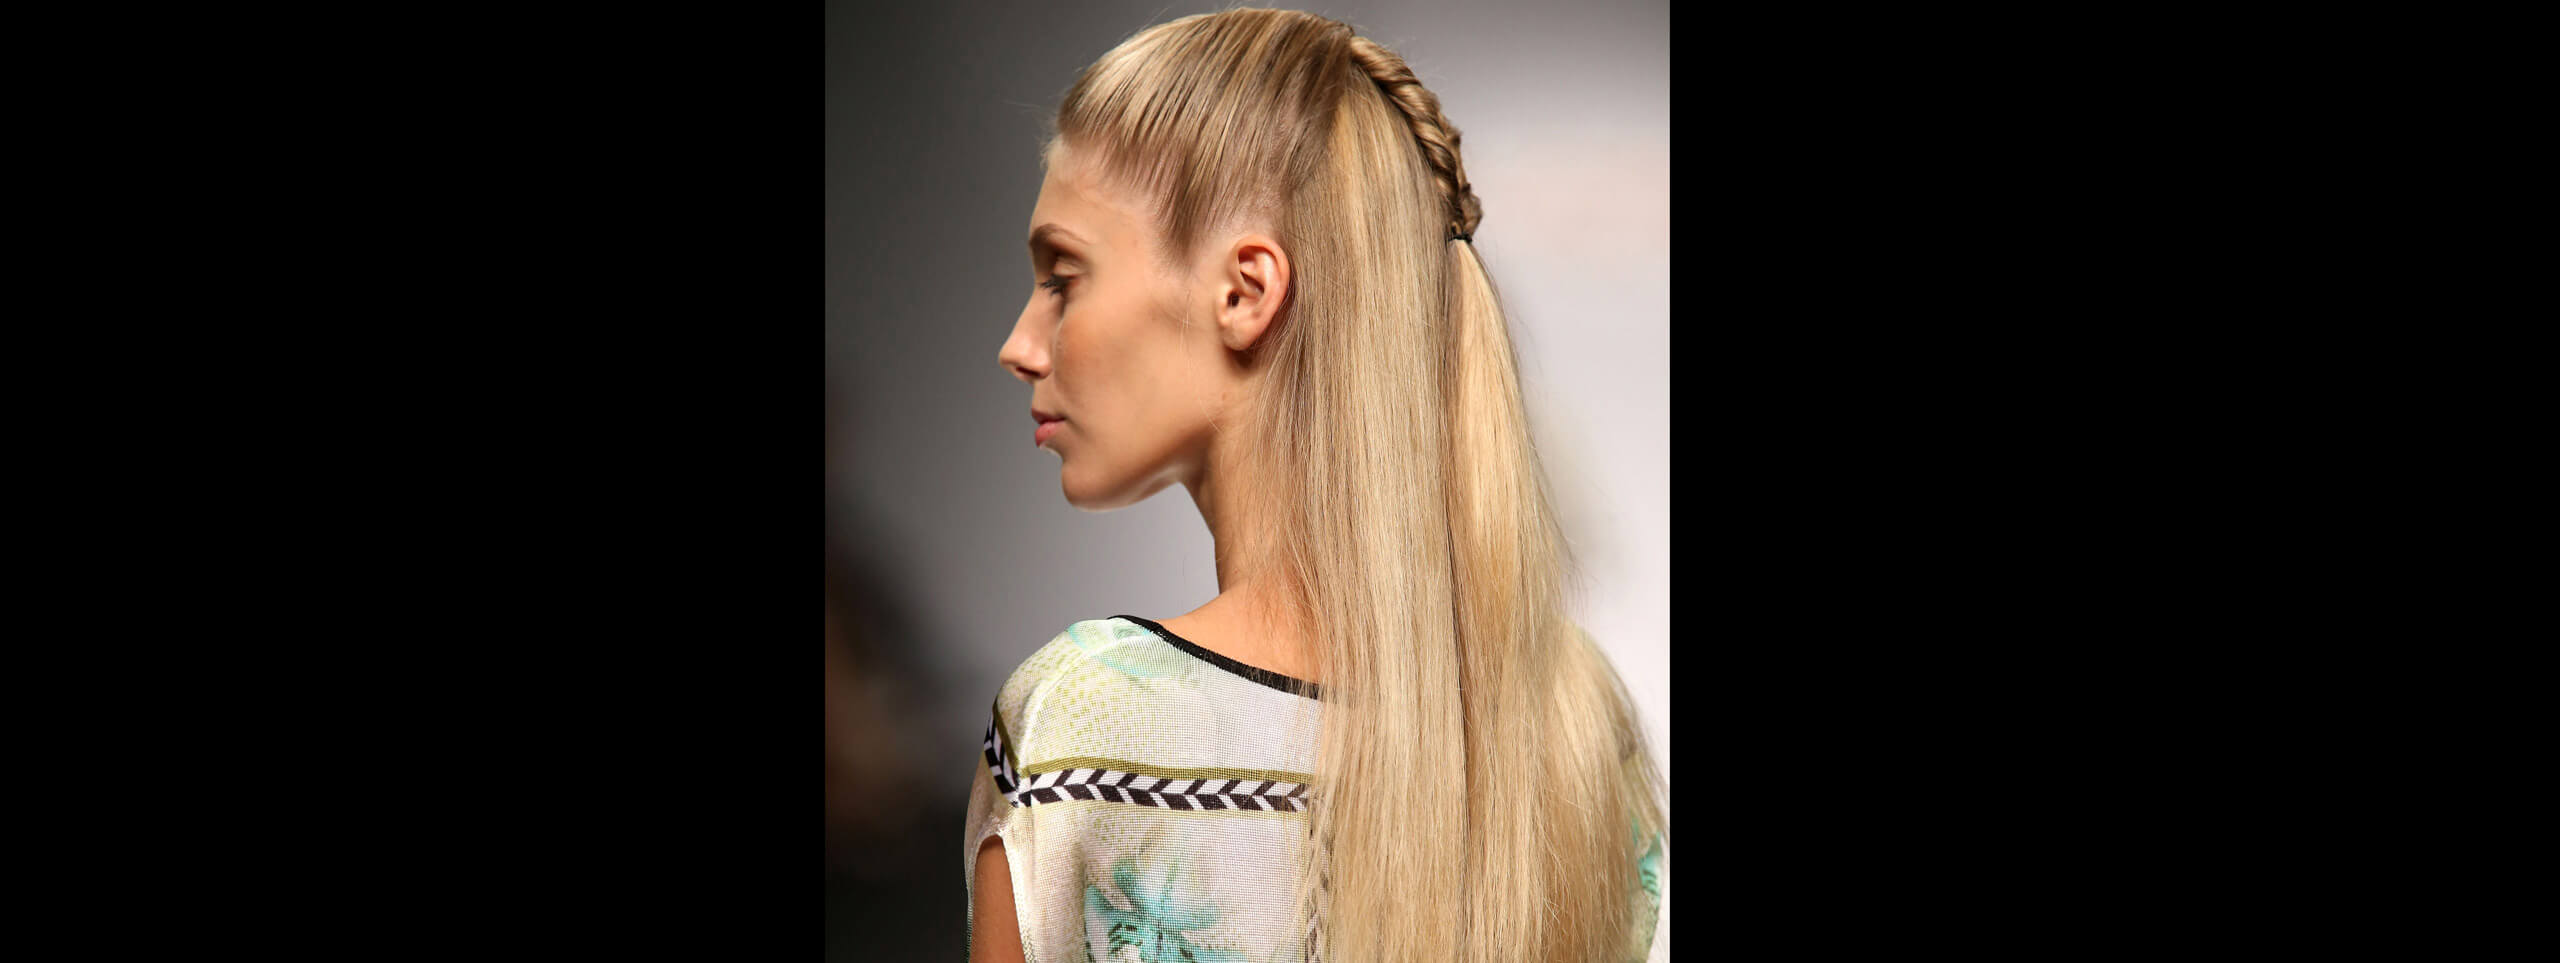 hairstyle-trends-2013